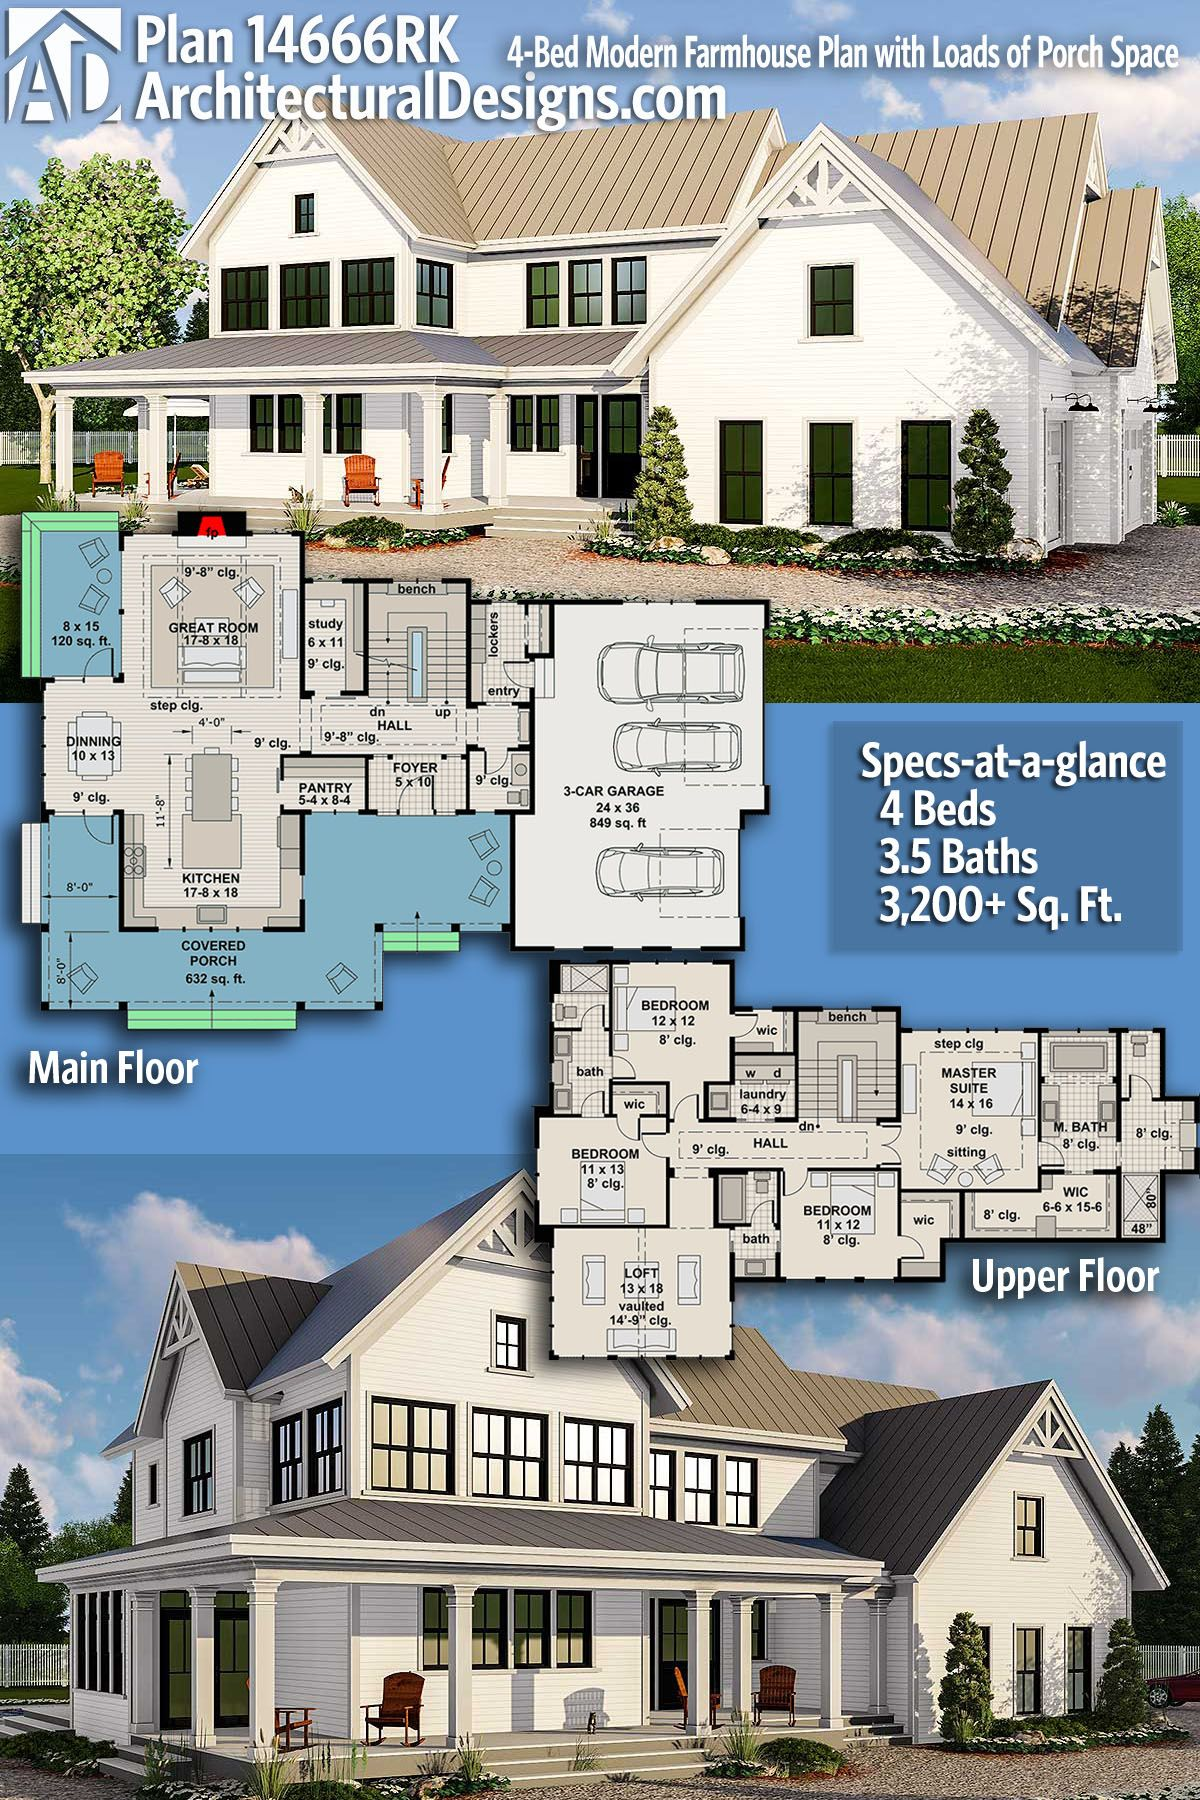 Plan rk modern farmhouse plan with loads of porch space in